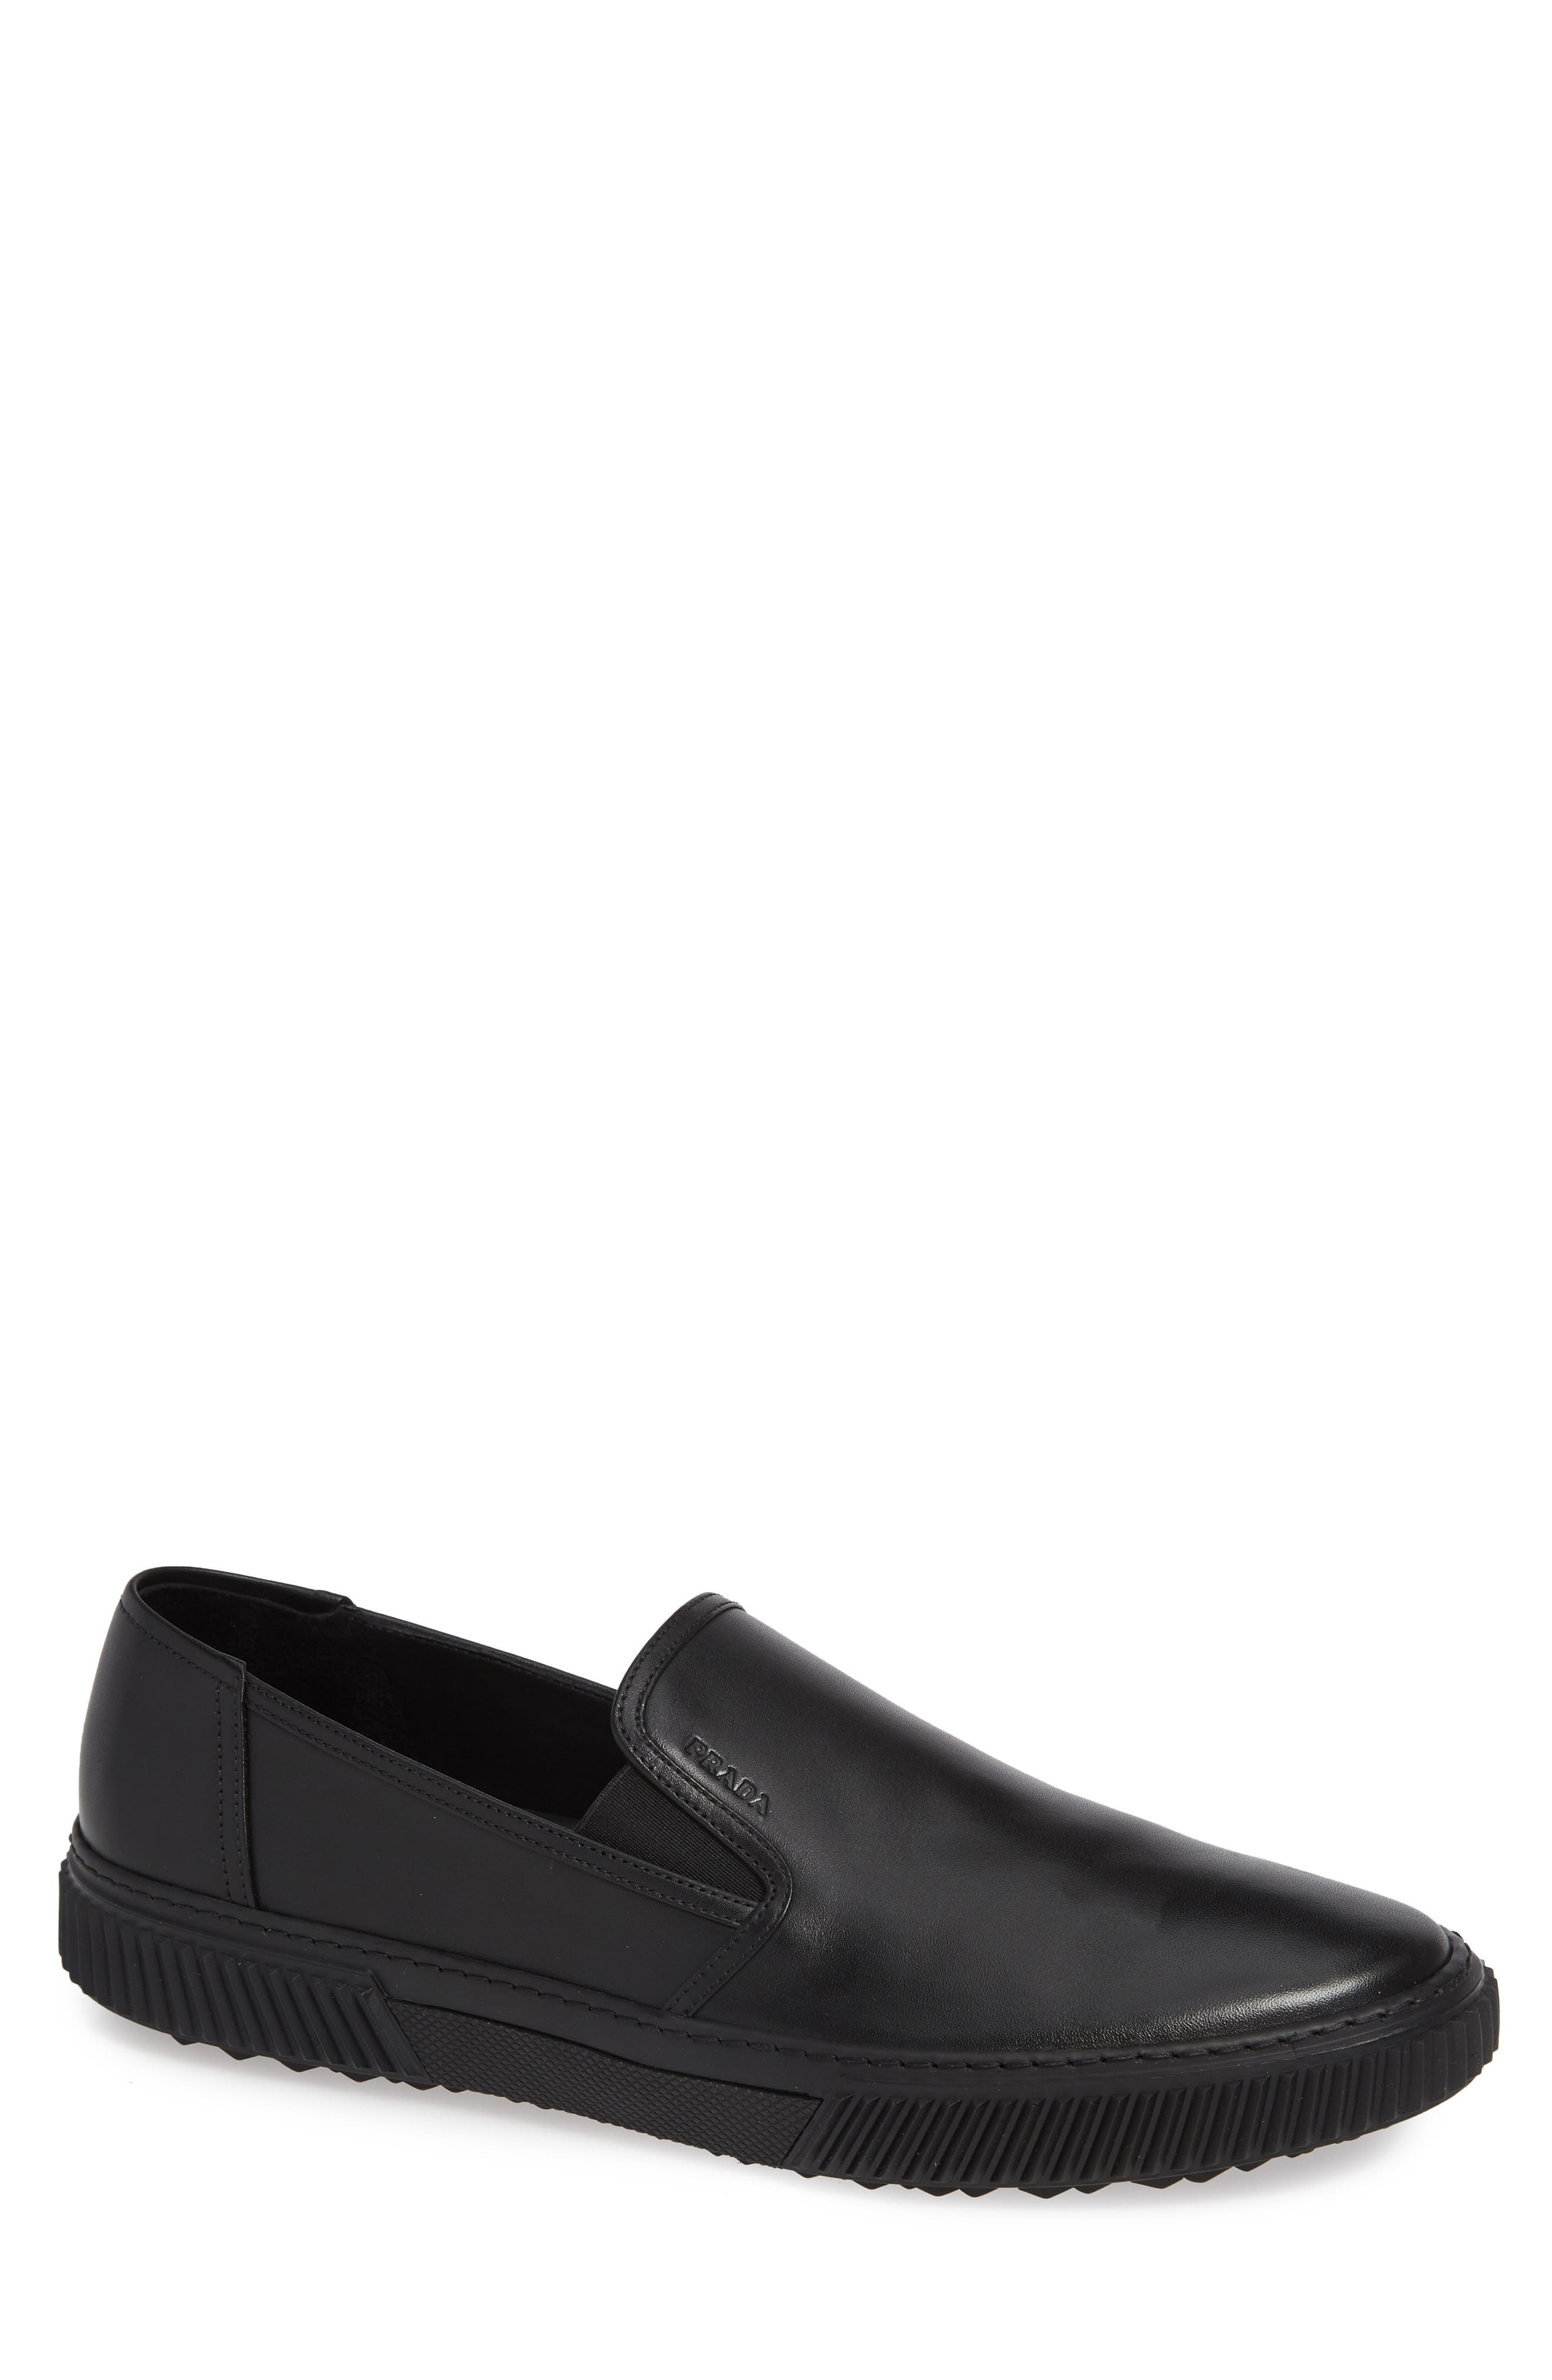 Stratus Slip-On Sneaker,                             Main thumbnail 1, color,                             NERO/ NERO